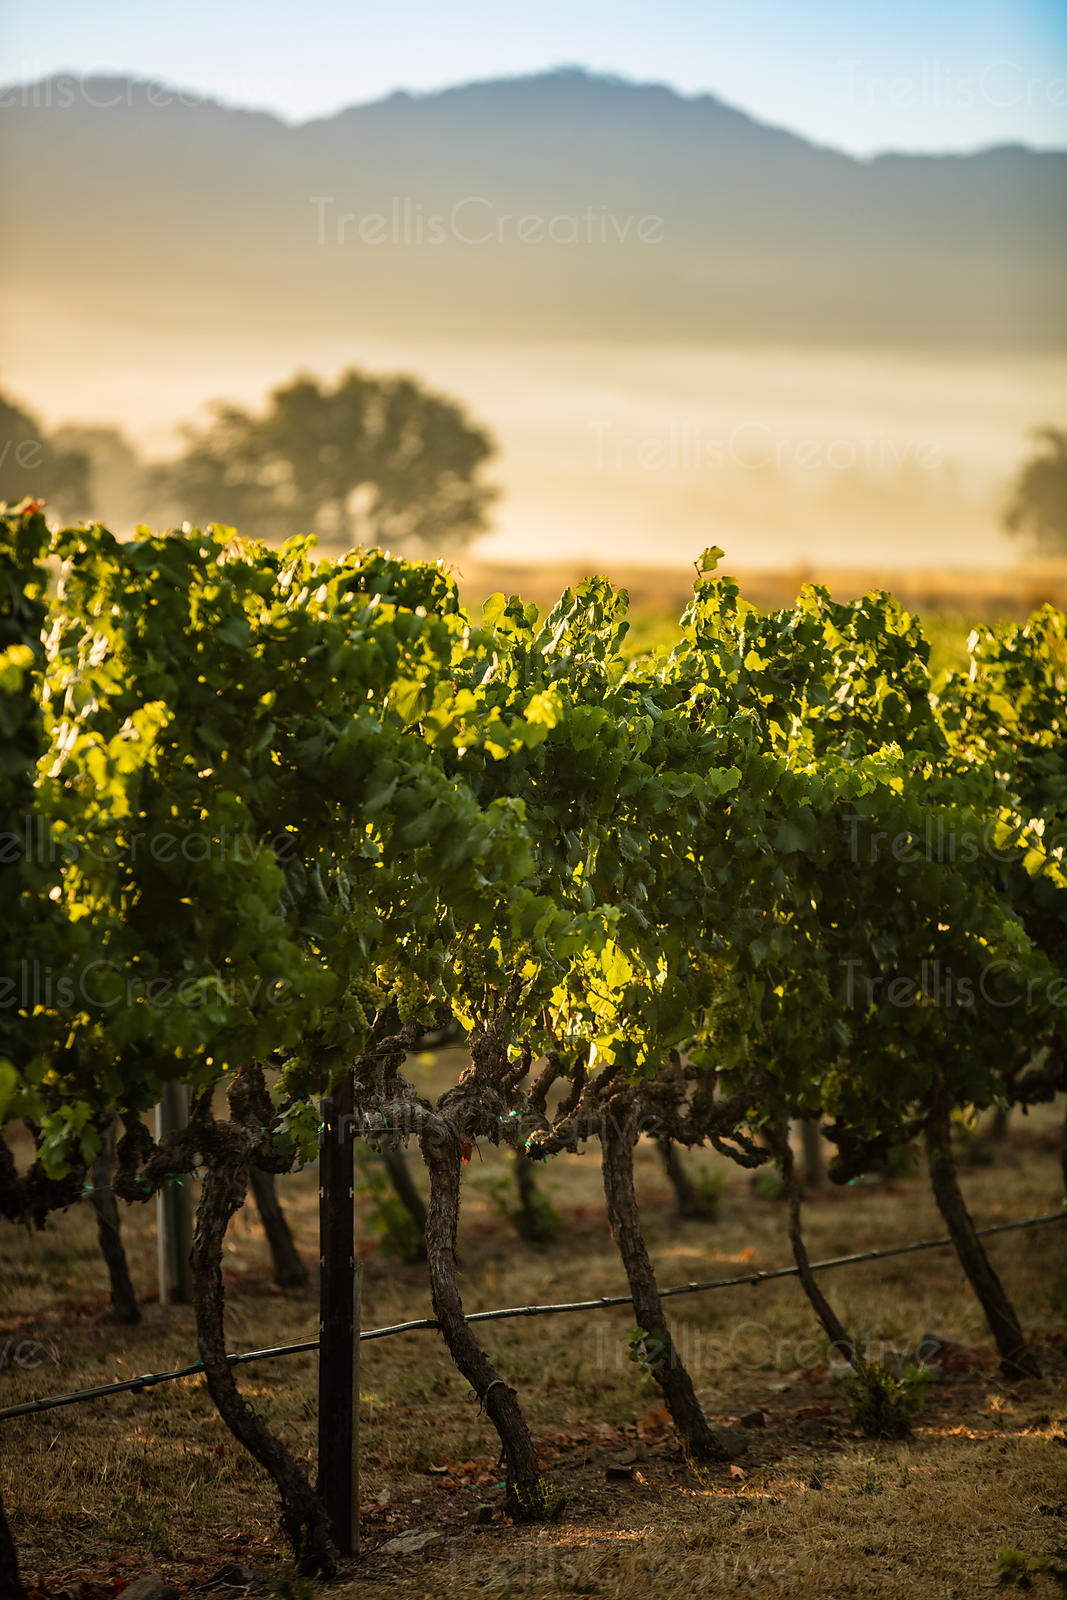 Grape vines in the early morning, Napa Valley, California, USA.